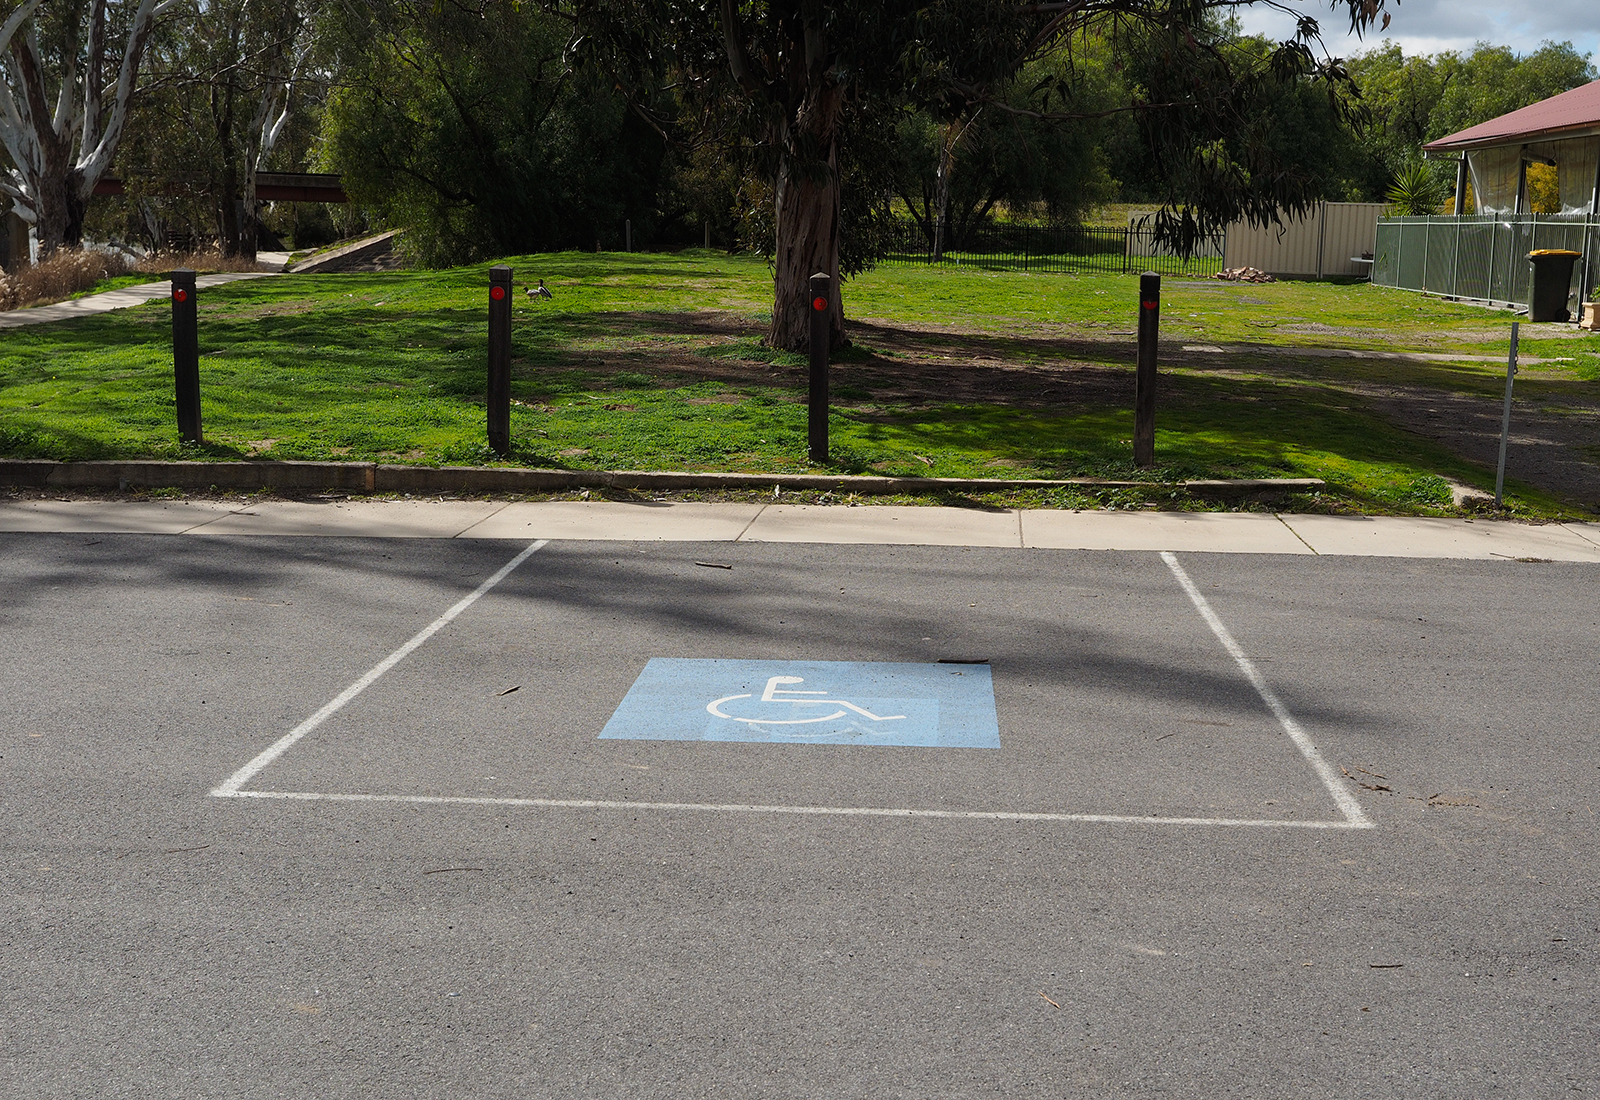 Disabled parking at the Loddon River picnic area in Bridgewater